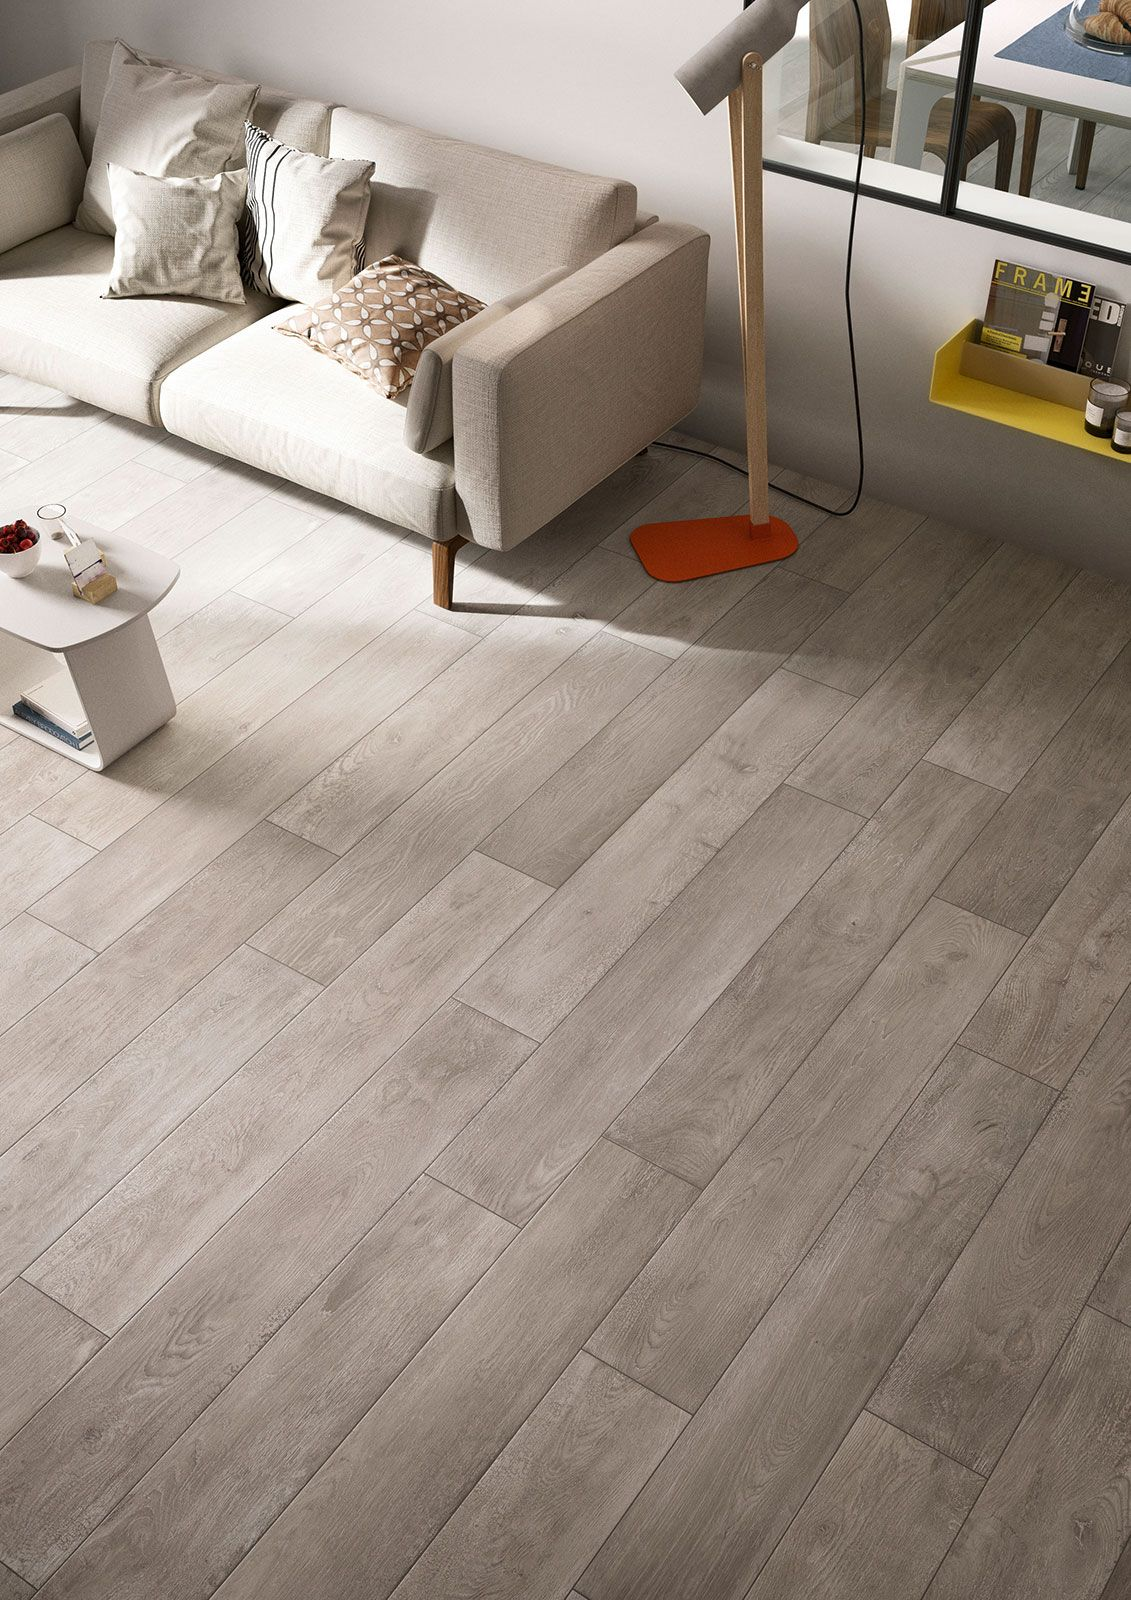 Wood tiles flooring treverktime ceramic tiles marazzi_6535 IUYPAMT